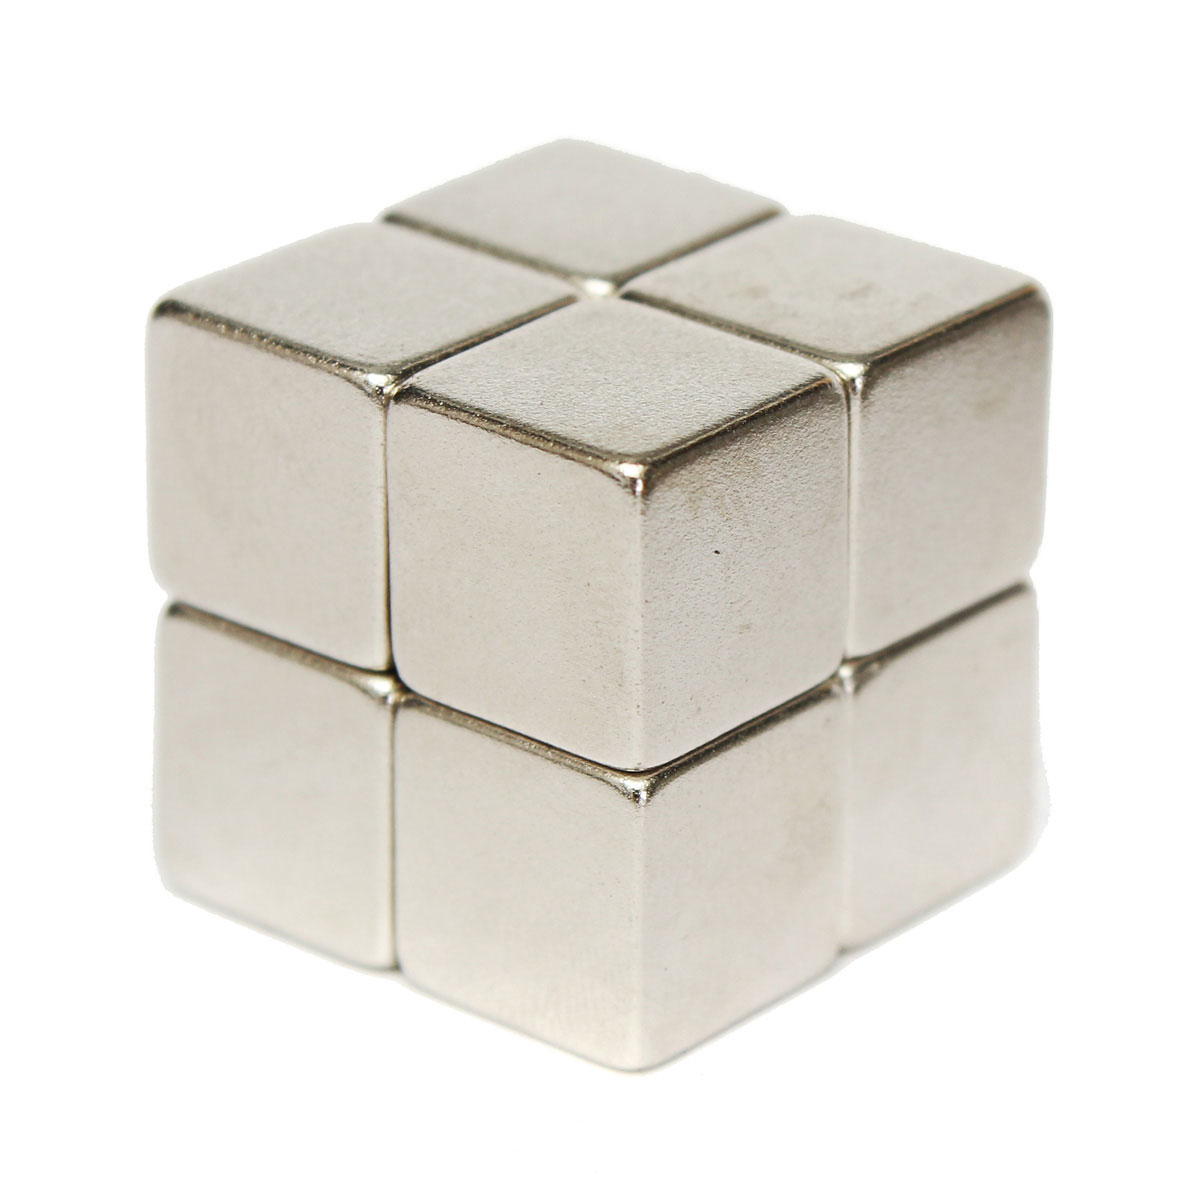 8pcs N52 10x10x10mm Block Neodymium Magnet Super Strong Permanent Rare Earth Magnet New